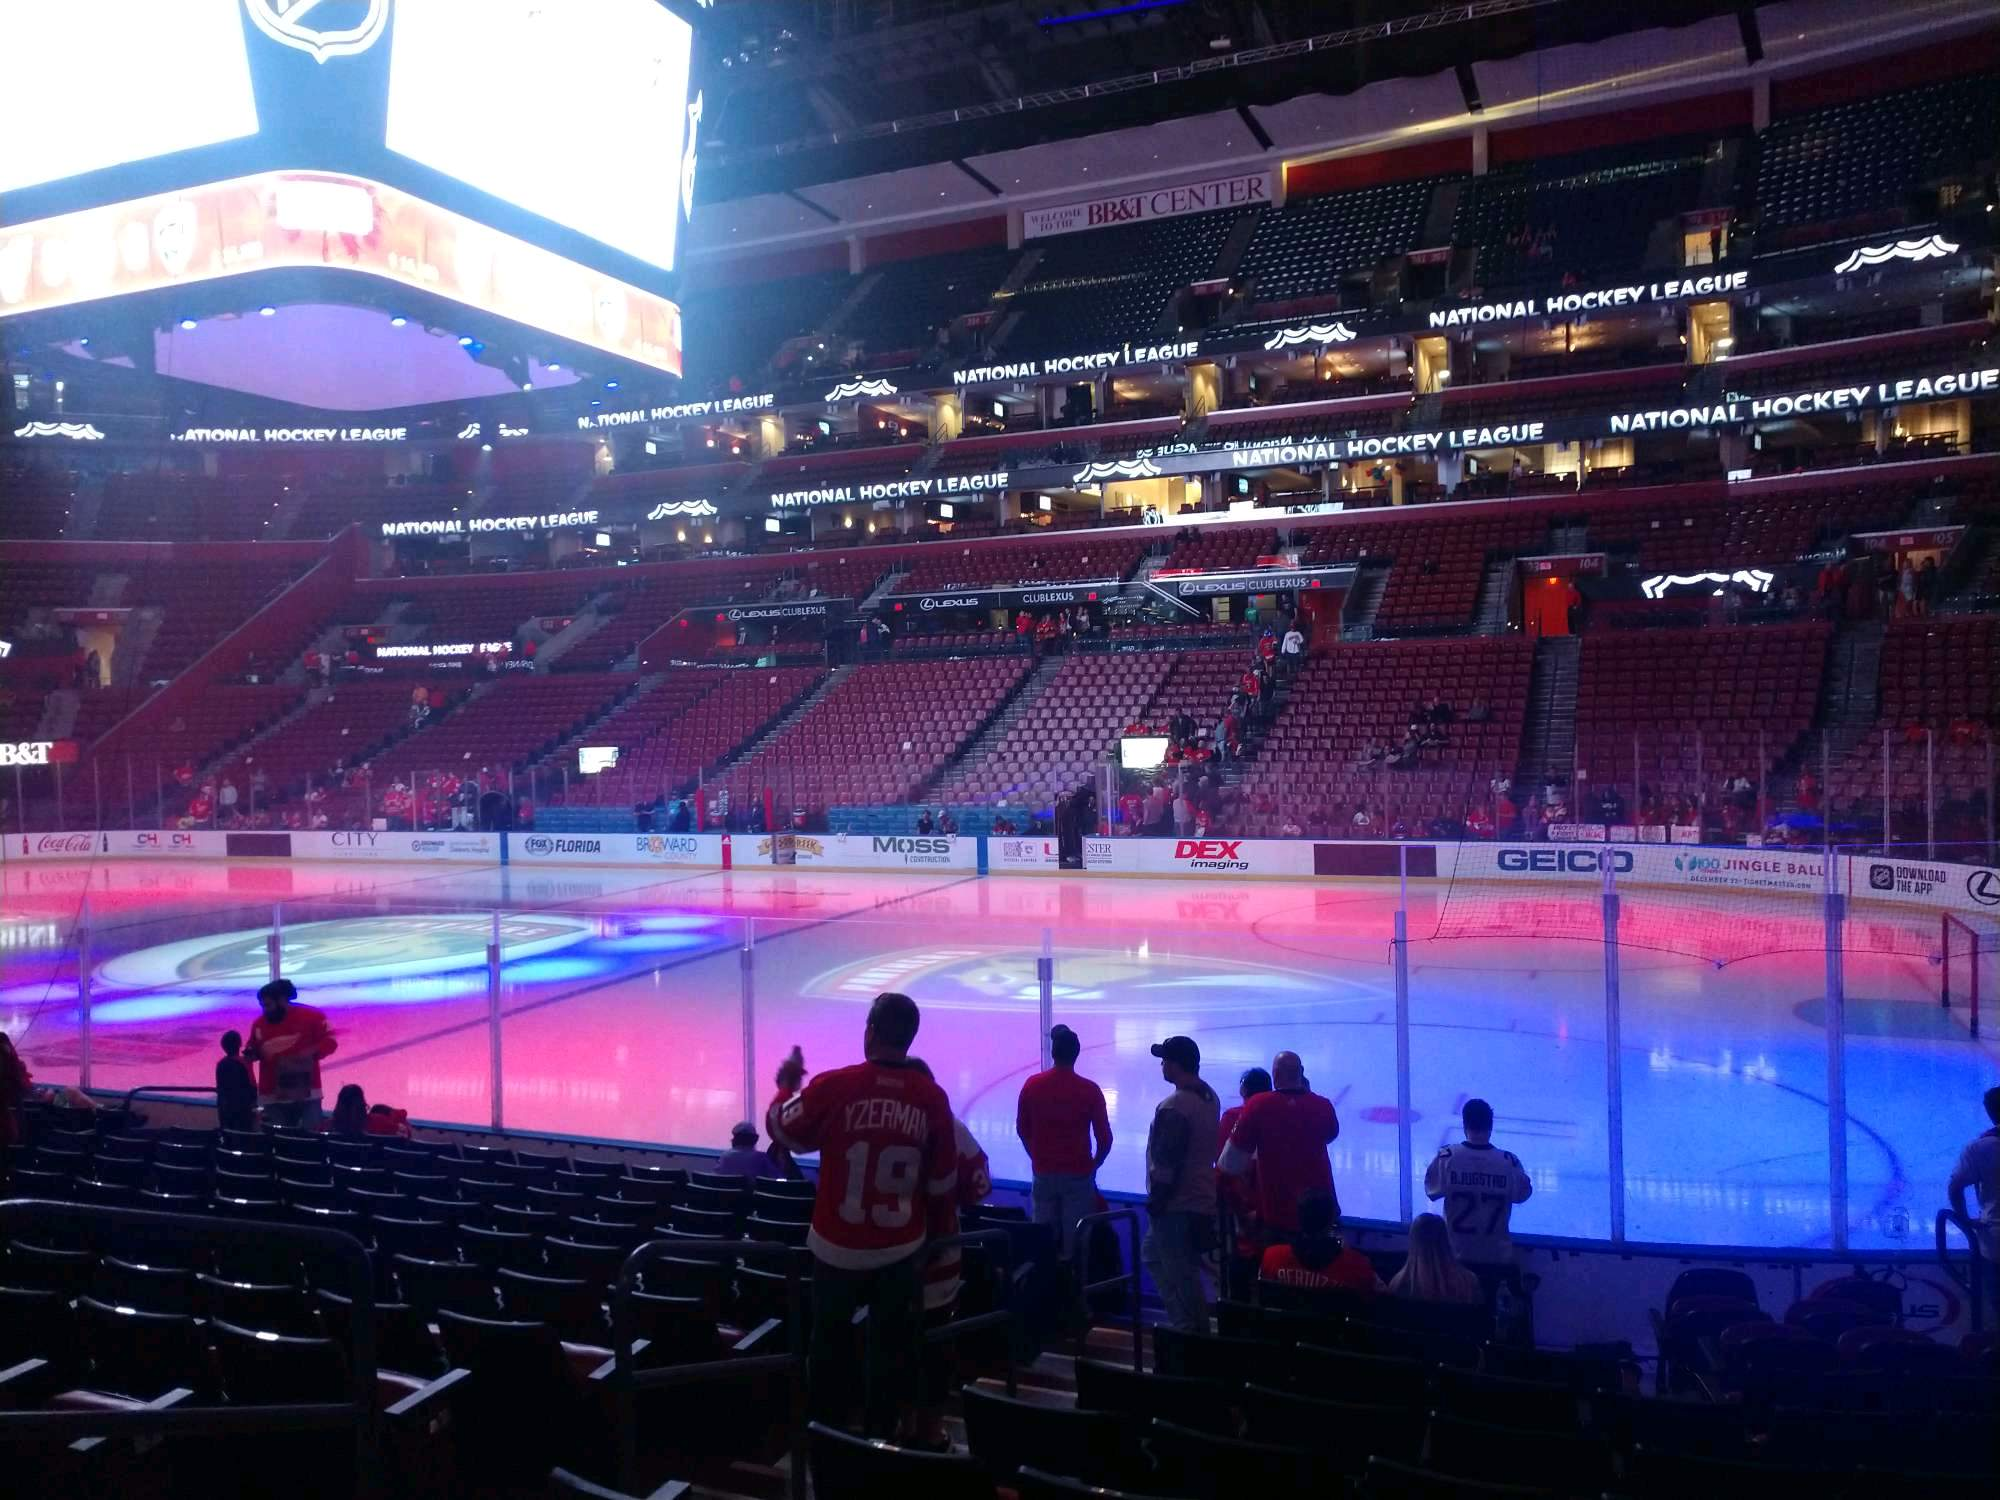 BB&T Center Section 115 Row 12 Seat 8